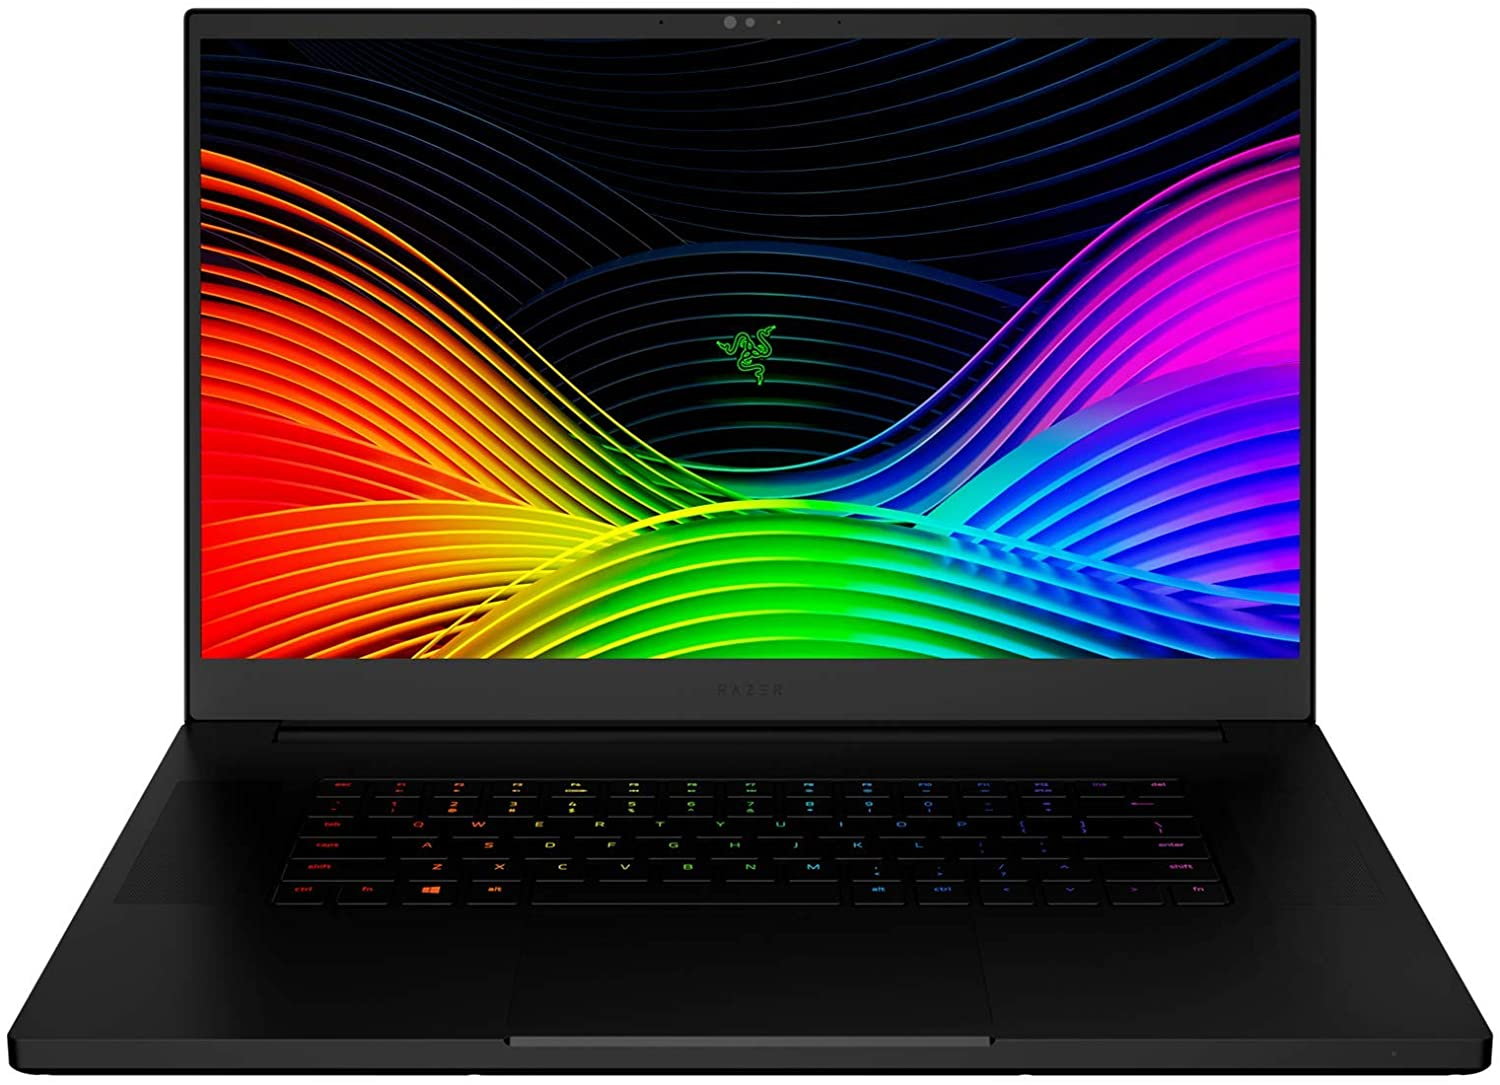 Razer Blade Pro 17 NVIDIA GeForce RTX 2080 Max-Q Gaming Laptop